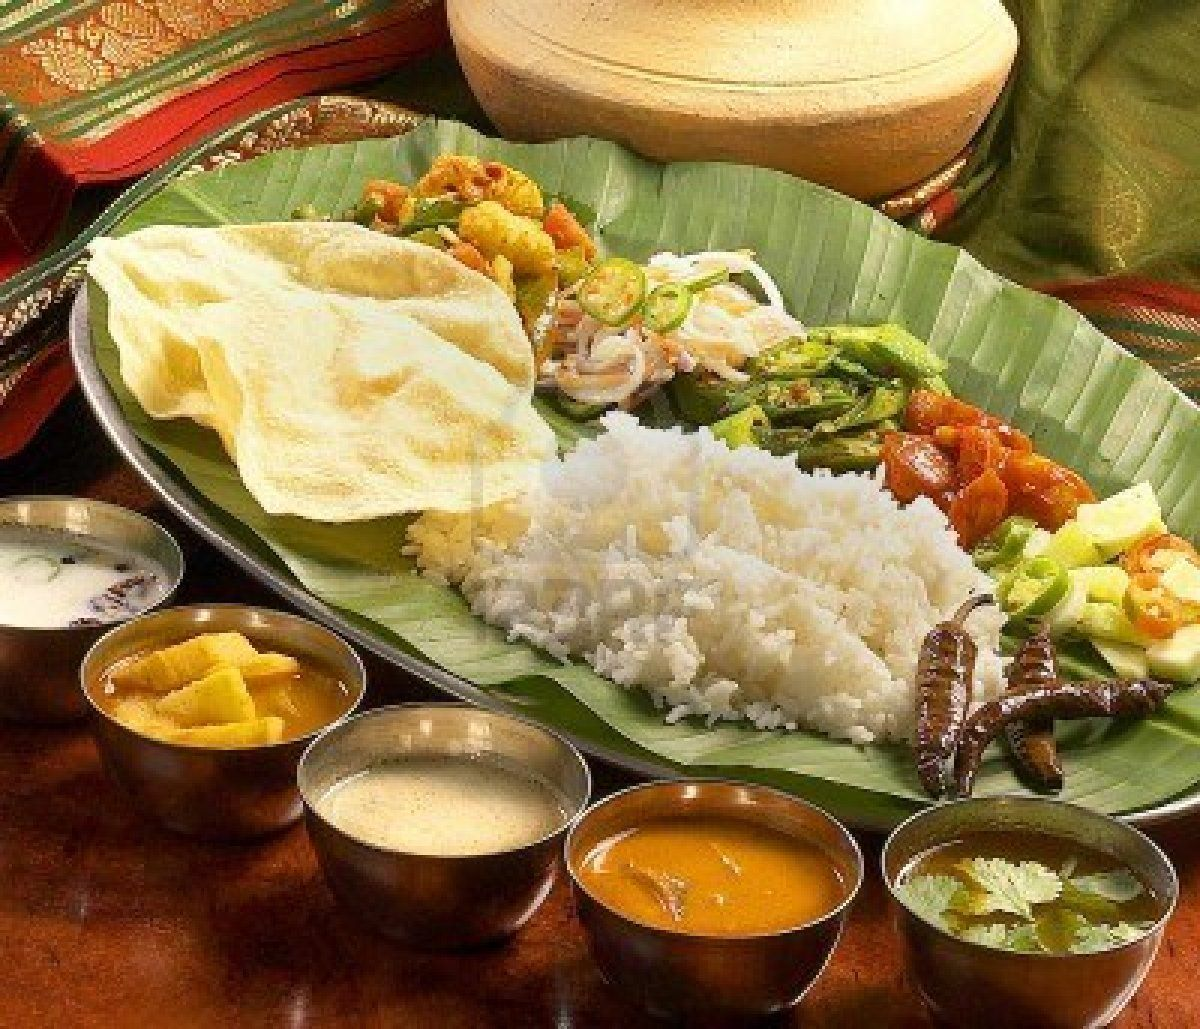 Go on a foodie tour in India Food, Full meal recipes